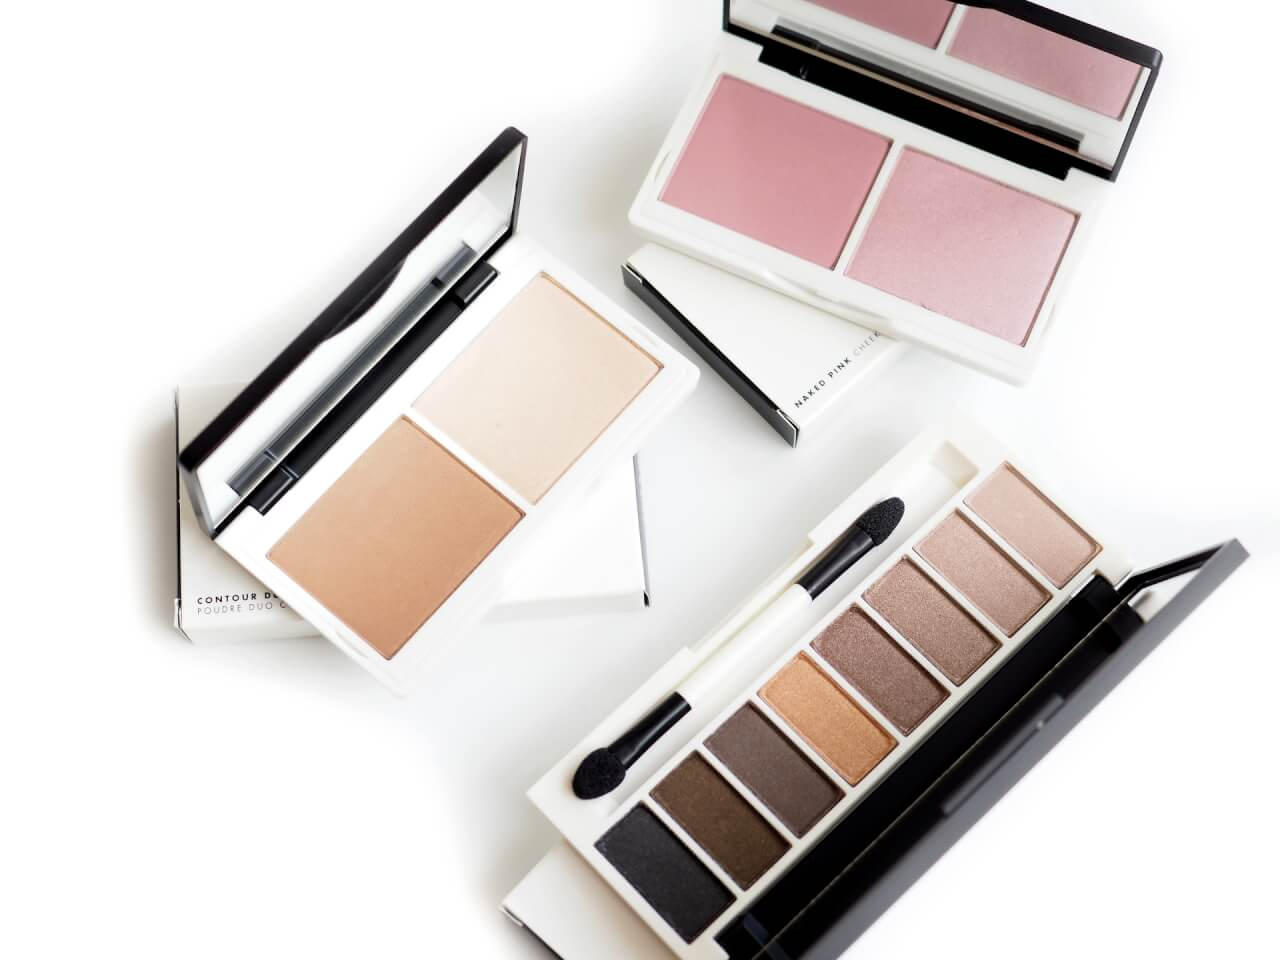 Lily Lolo Makijaż Mineralny – Naked Pink Cheek Duo, Sculp and Glow, Laid Bare Eye Palette | #mojeminerały